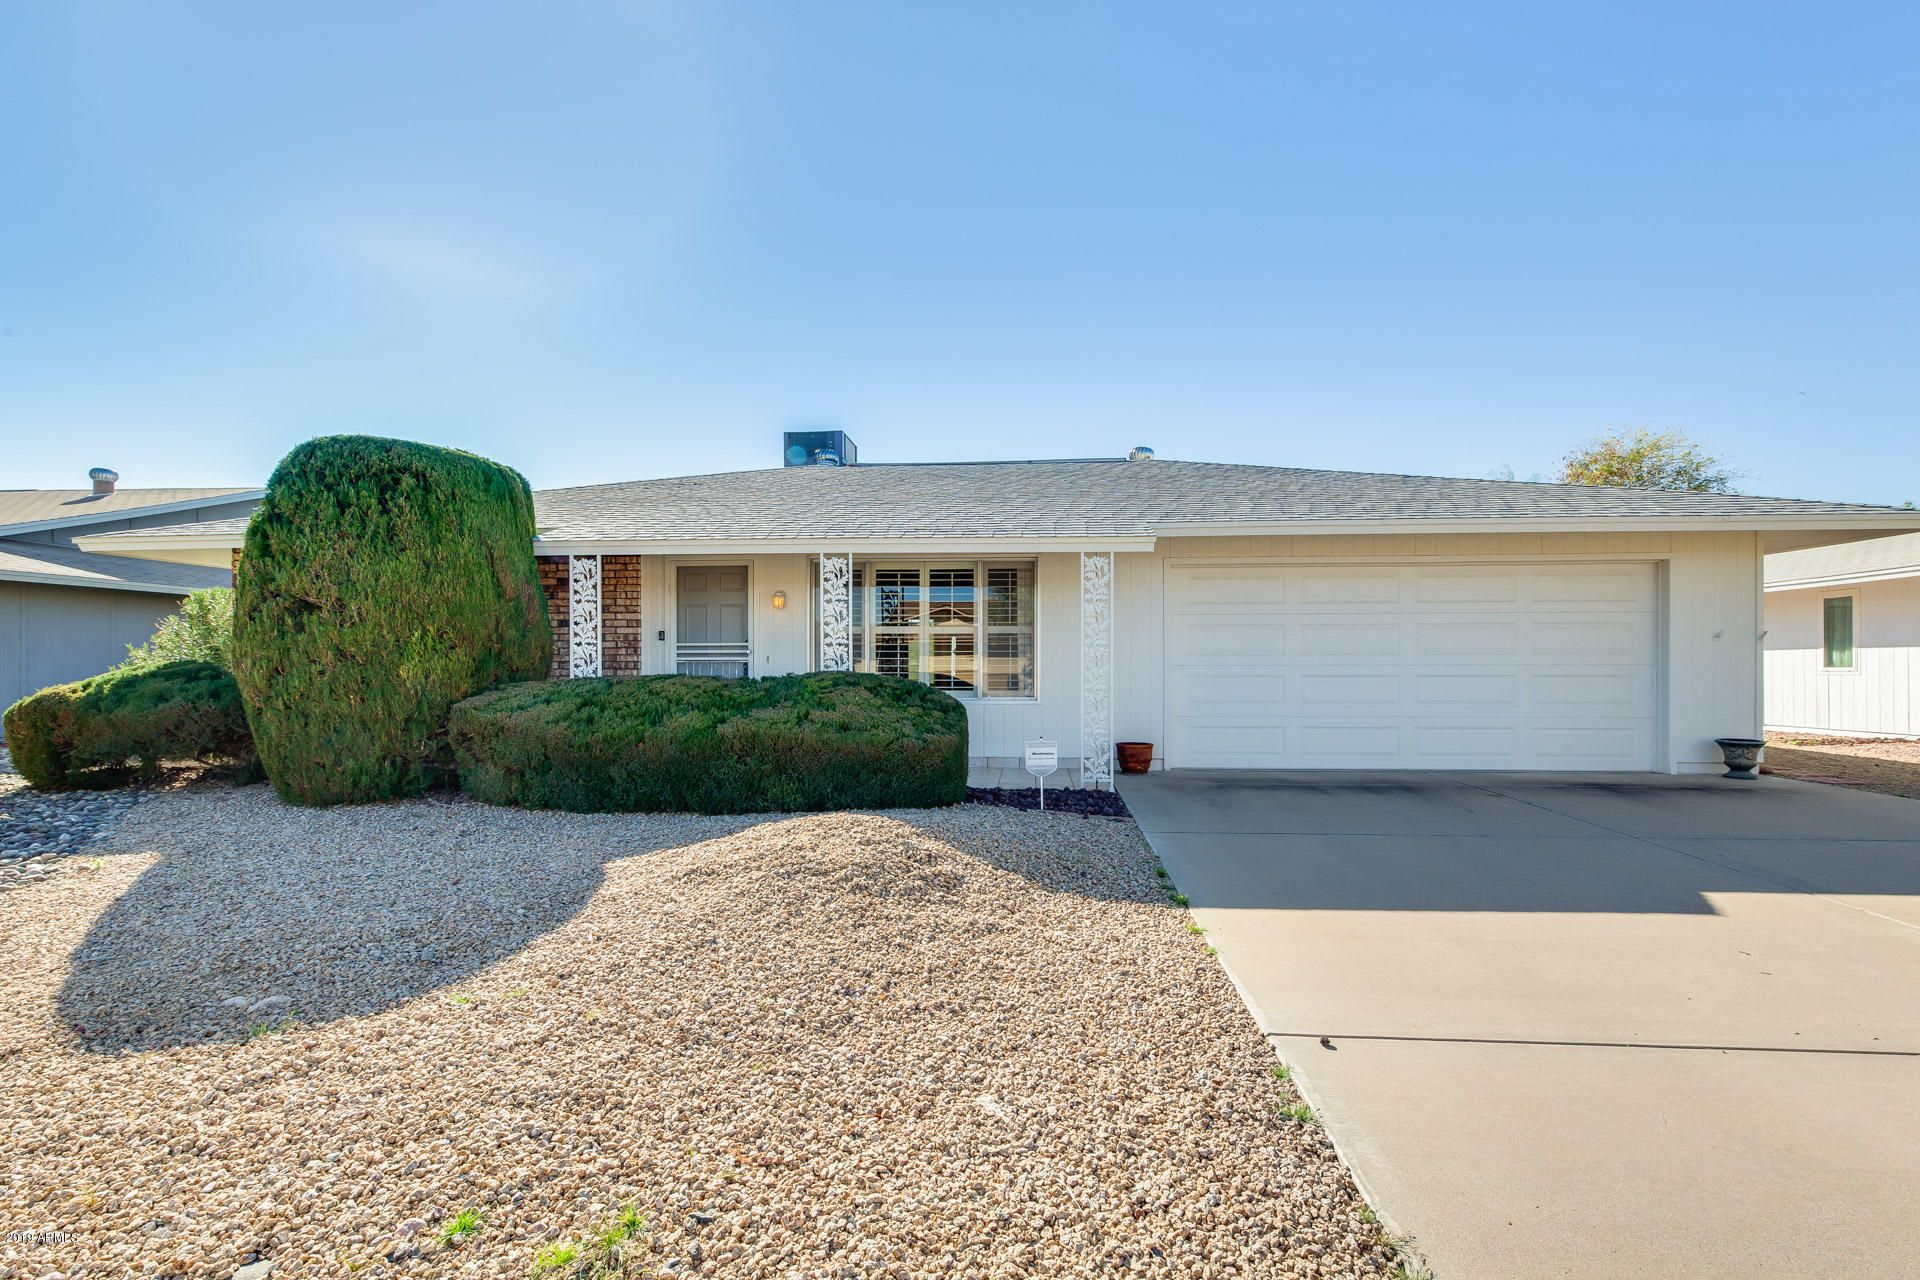 Pleasing 12323 Cougar Dr Sun City West Az 85375 2 Bed 2 Bath Single Family Home Mls 5895587 33 Photos Trulia Beutiful Home Inspiration Aditmahrainfo